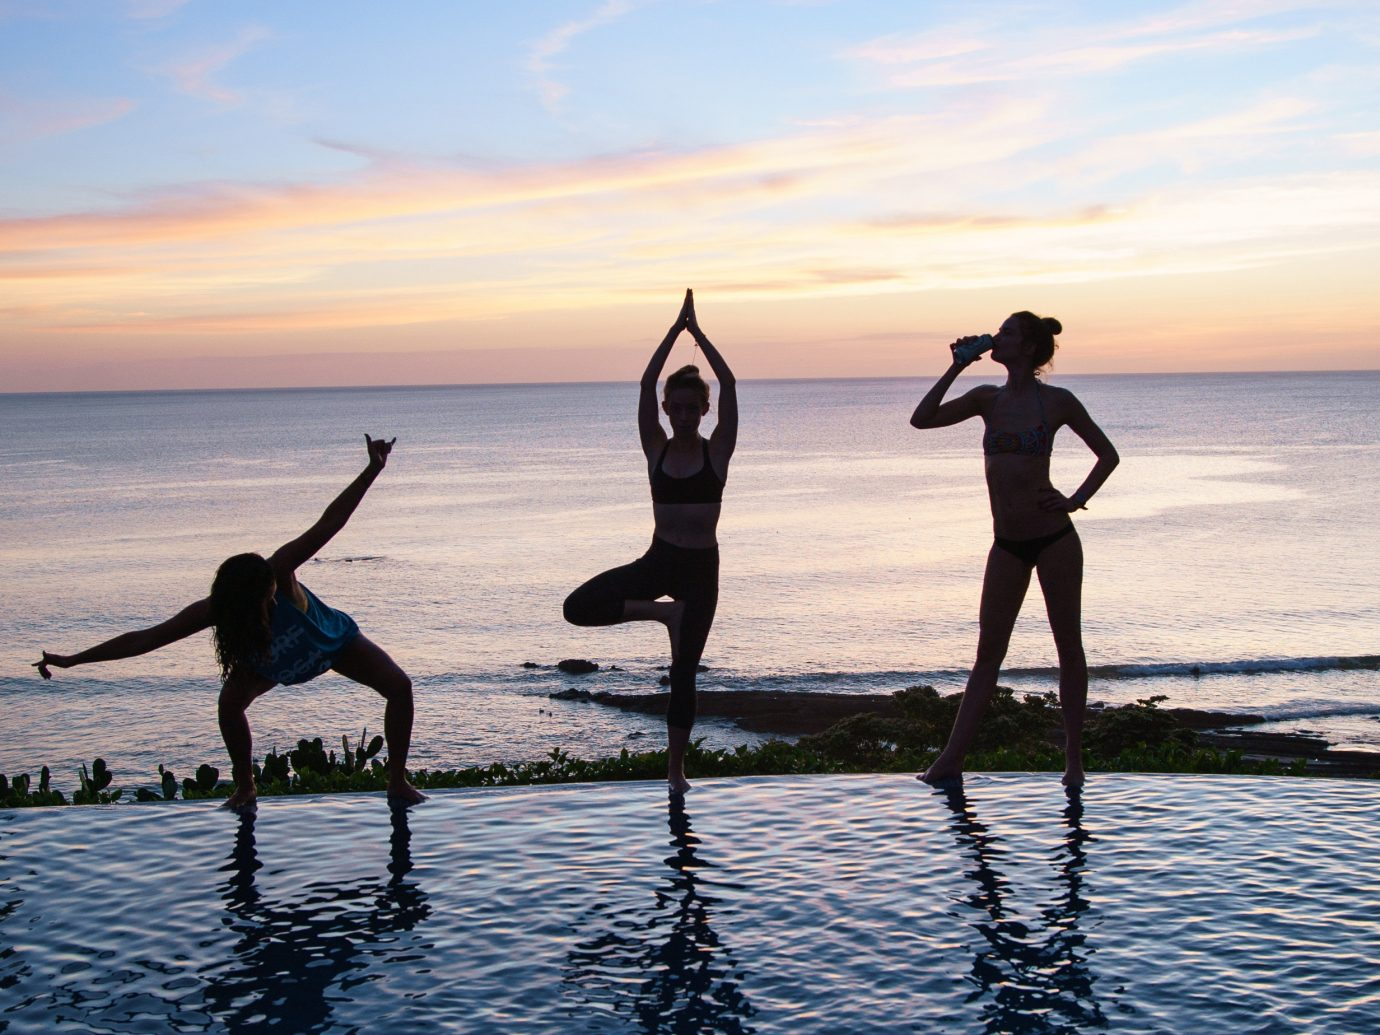 Health + Wellness Meditation Retreats Trip Ideas Yoga Retreats water sky outdoor Beach Sea Ocean physical fitness sports Sunset water sport silhouette surfing shore